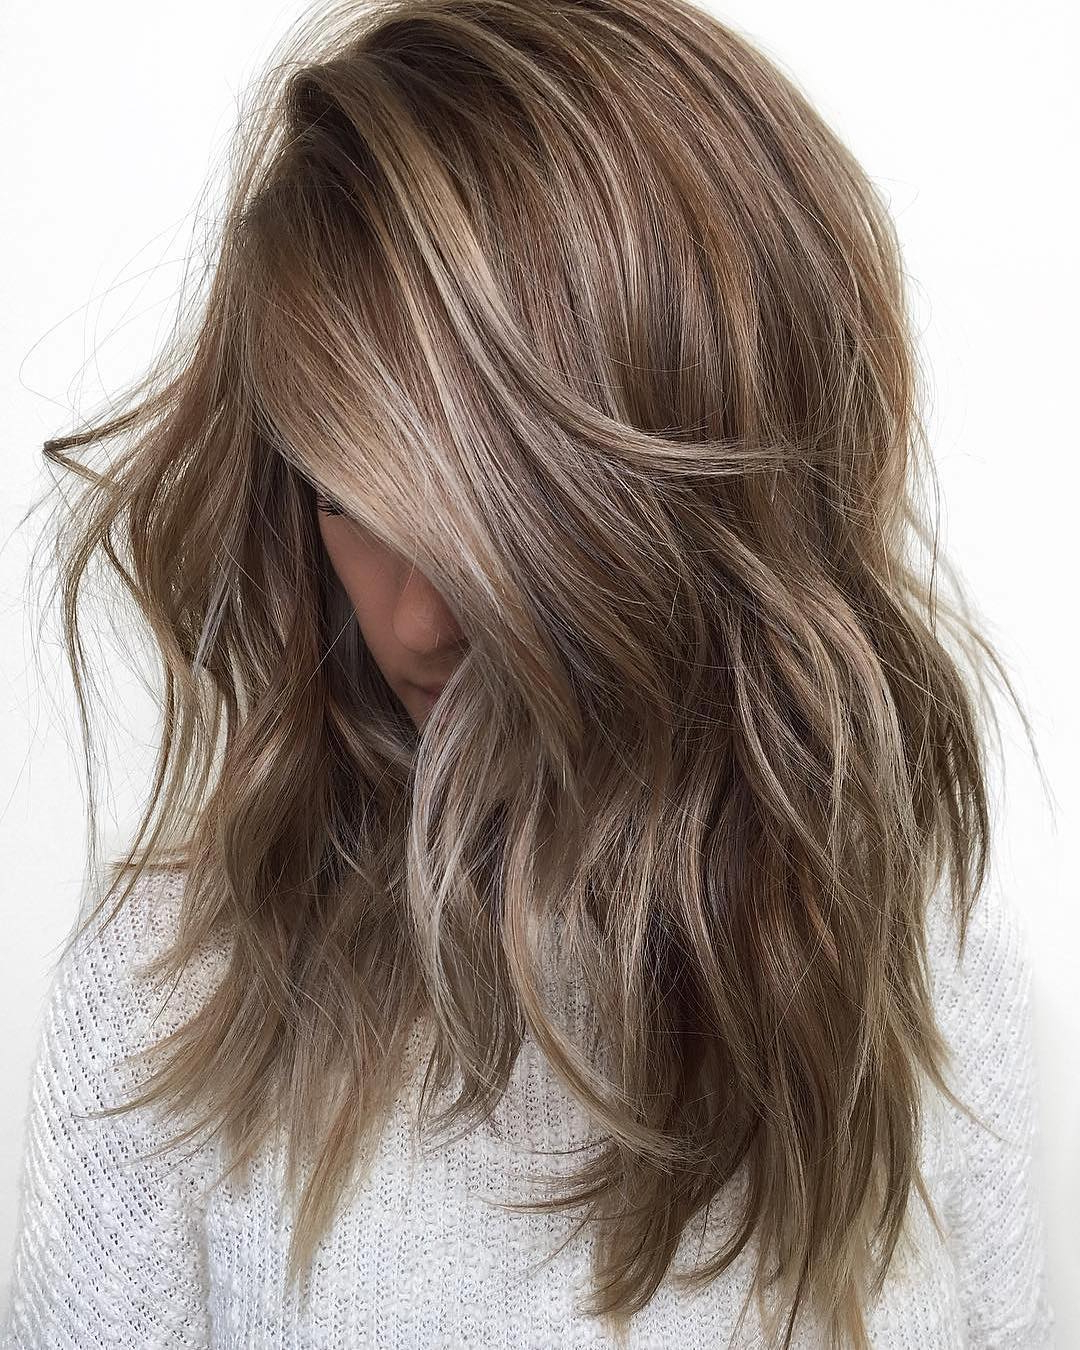 10 Balayage Ombre Hair Styles For Shoulder Length Hair, Women In Best And Newest Graduated Medium Haircuts (View 1 of 20)